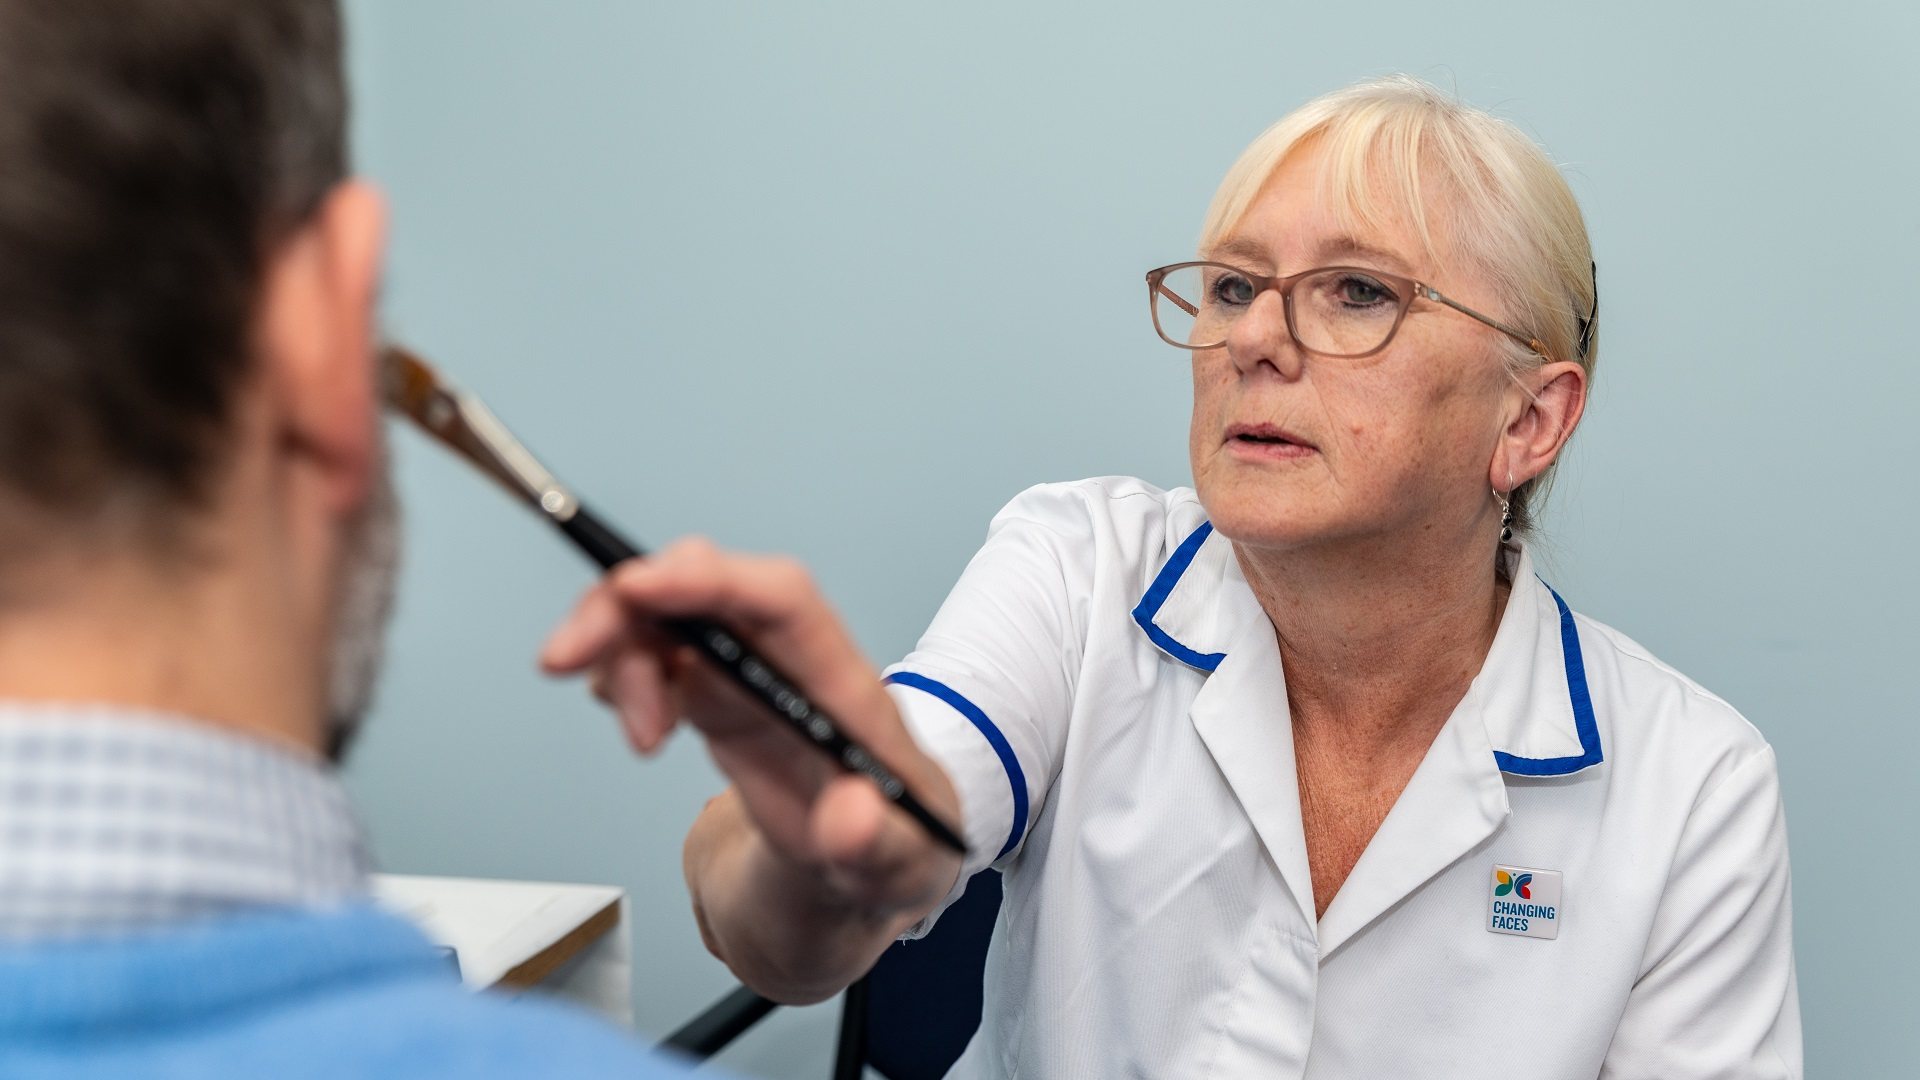 A woman in a nurse's top, wearing glasses with white hair tied up, applies skin camouflage products to a man's face. We can see the back of the man's head only - he has some stubble on his face and wears a shirt and a blue jumper.